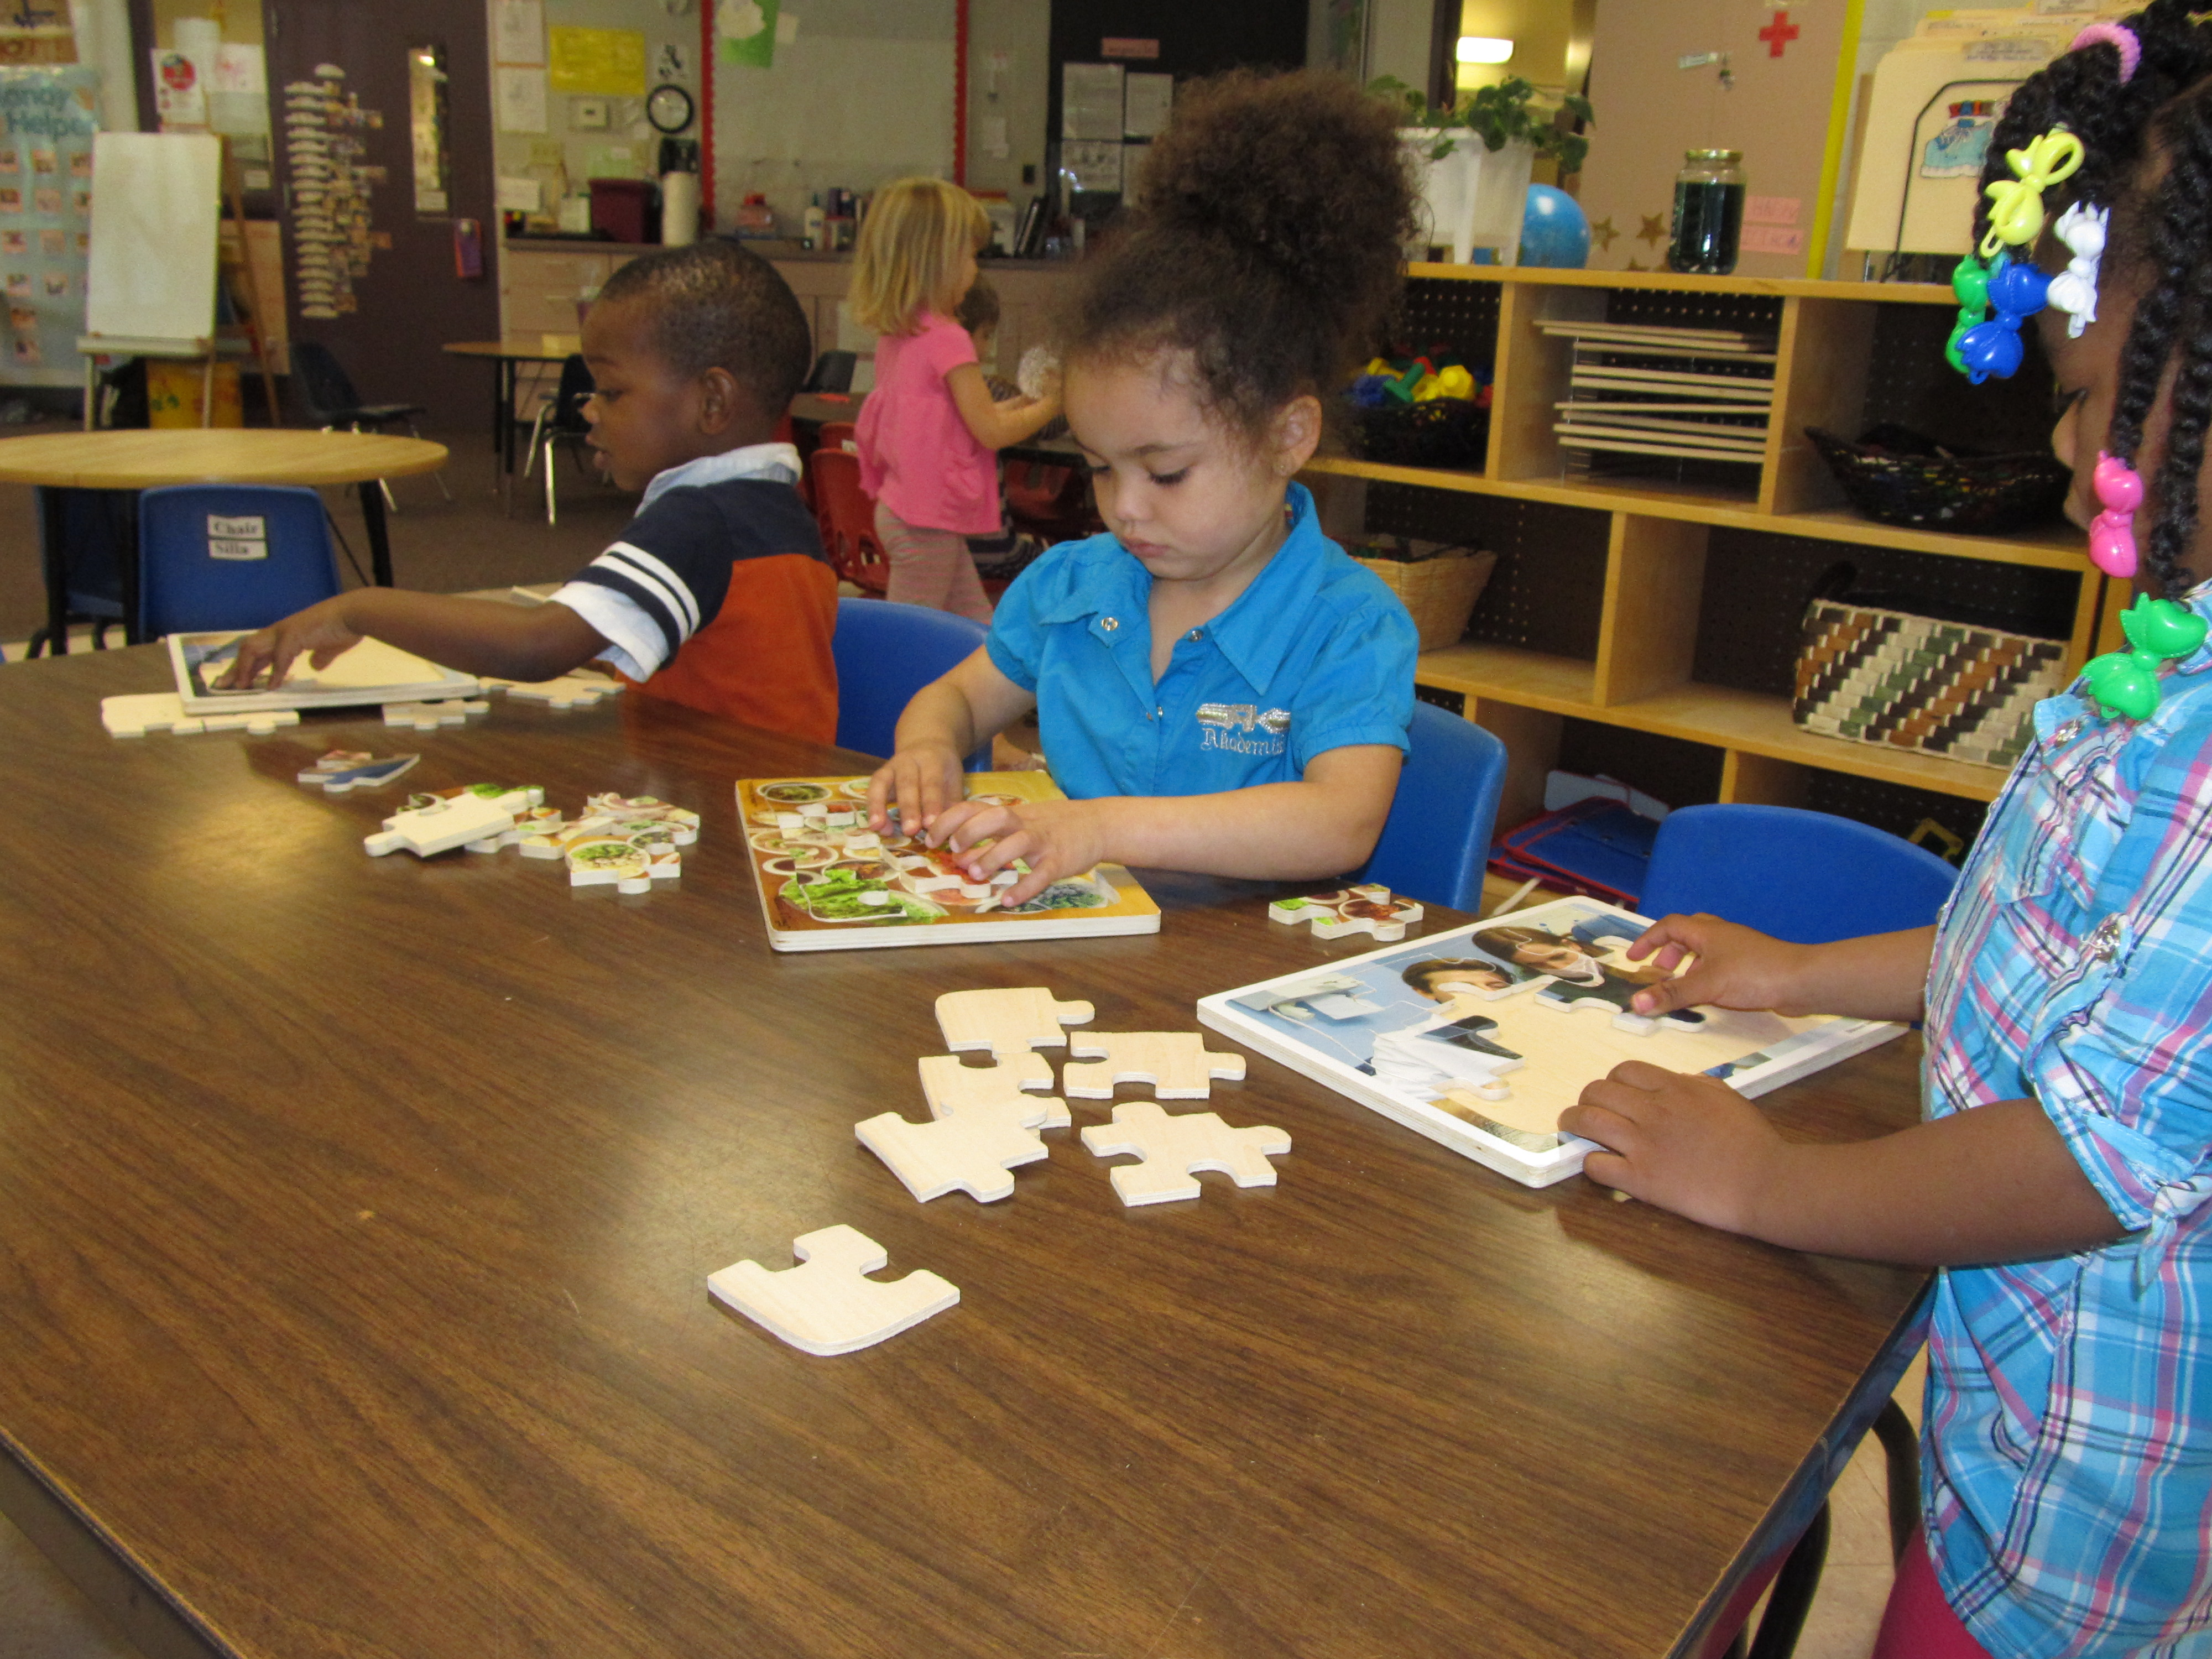 Toddler And Preschool Puzzle Play Aids Spatial Skills